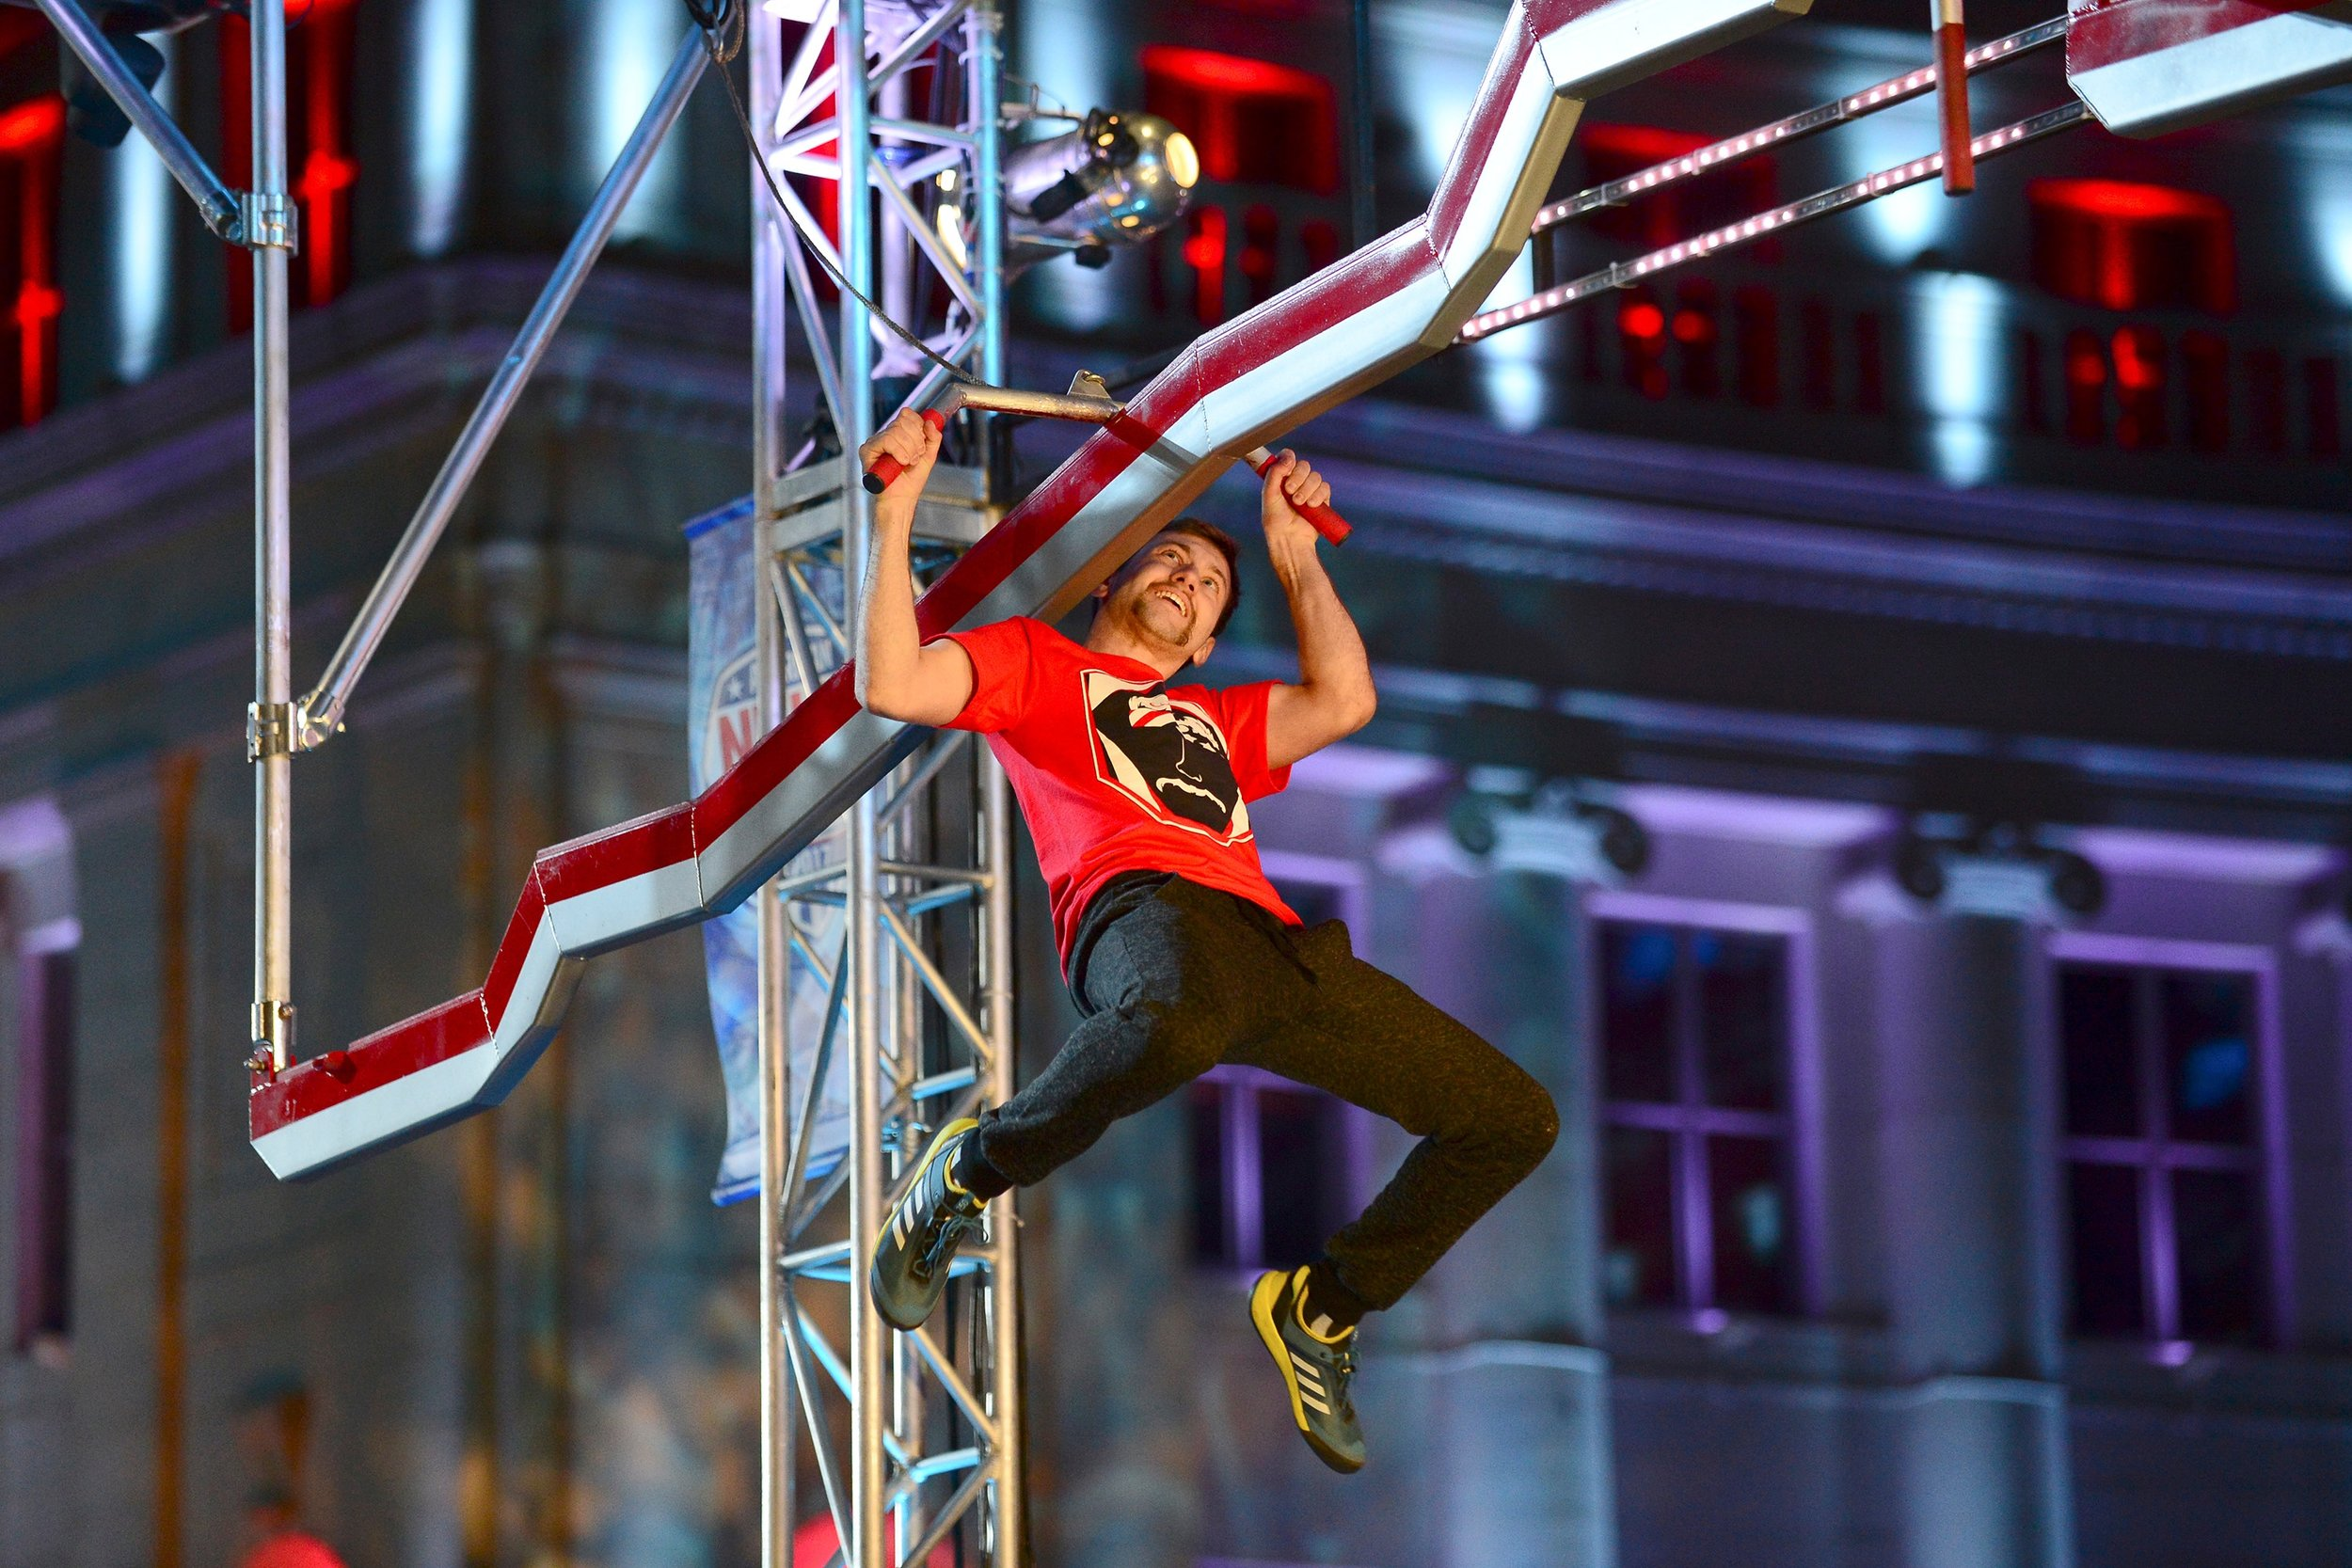 Knapp during his attempt at the American Ninja Warrior course. Photo courtesy of NBC